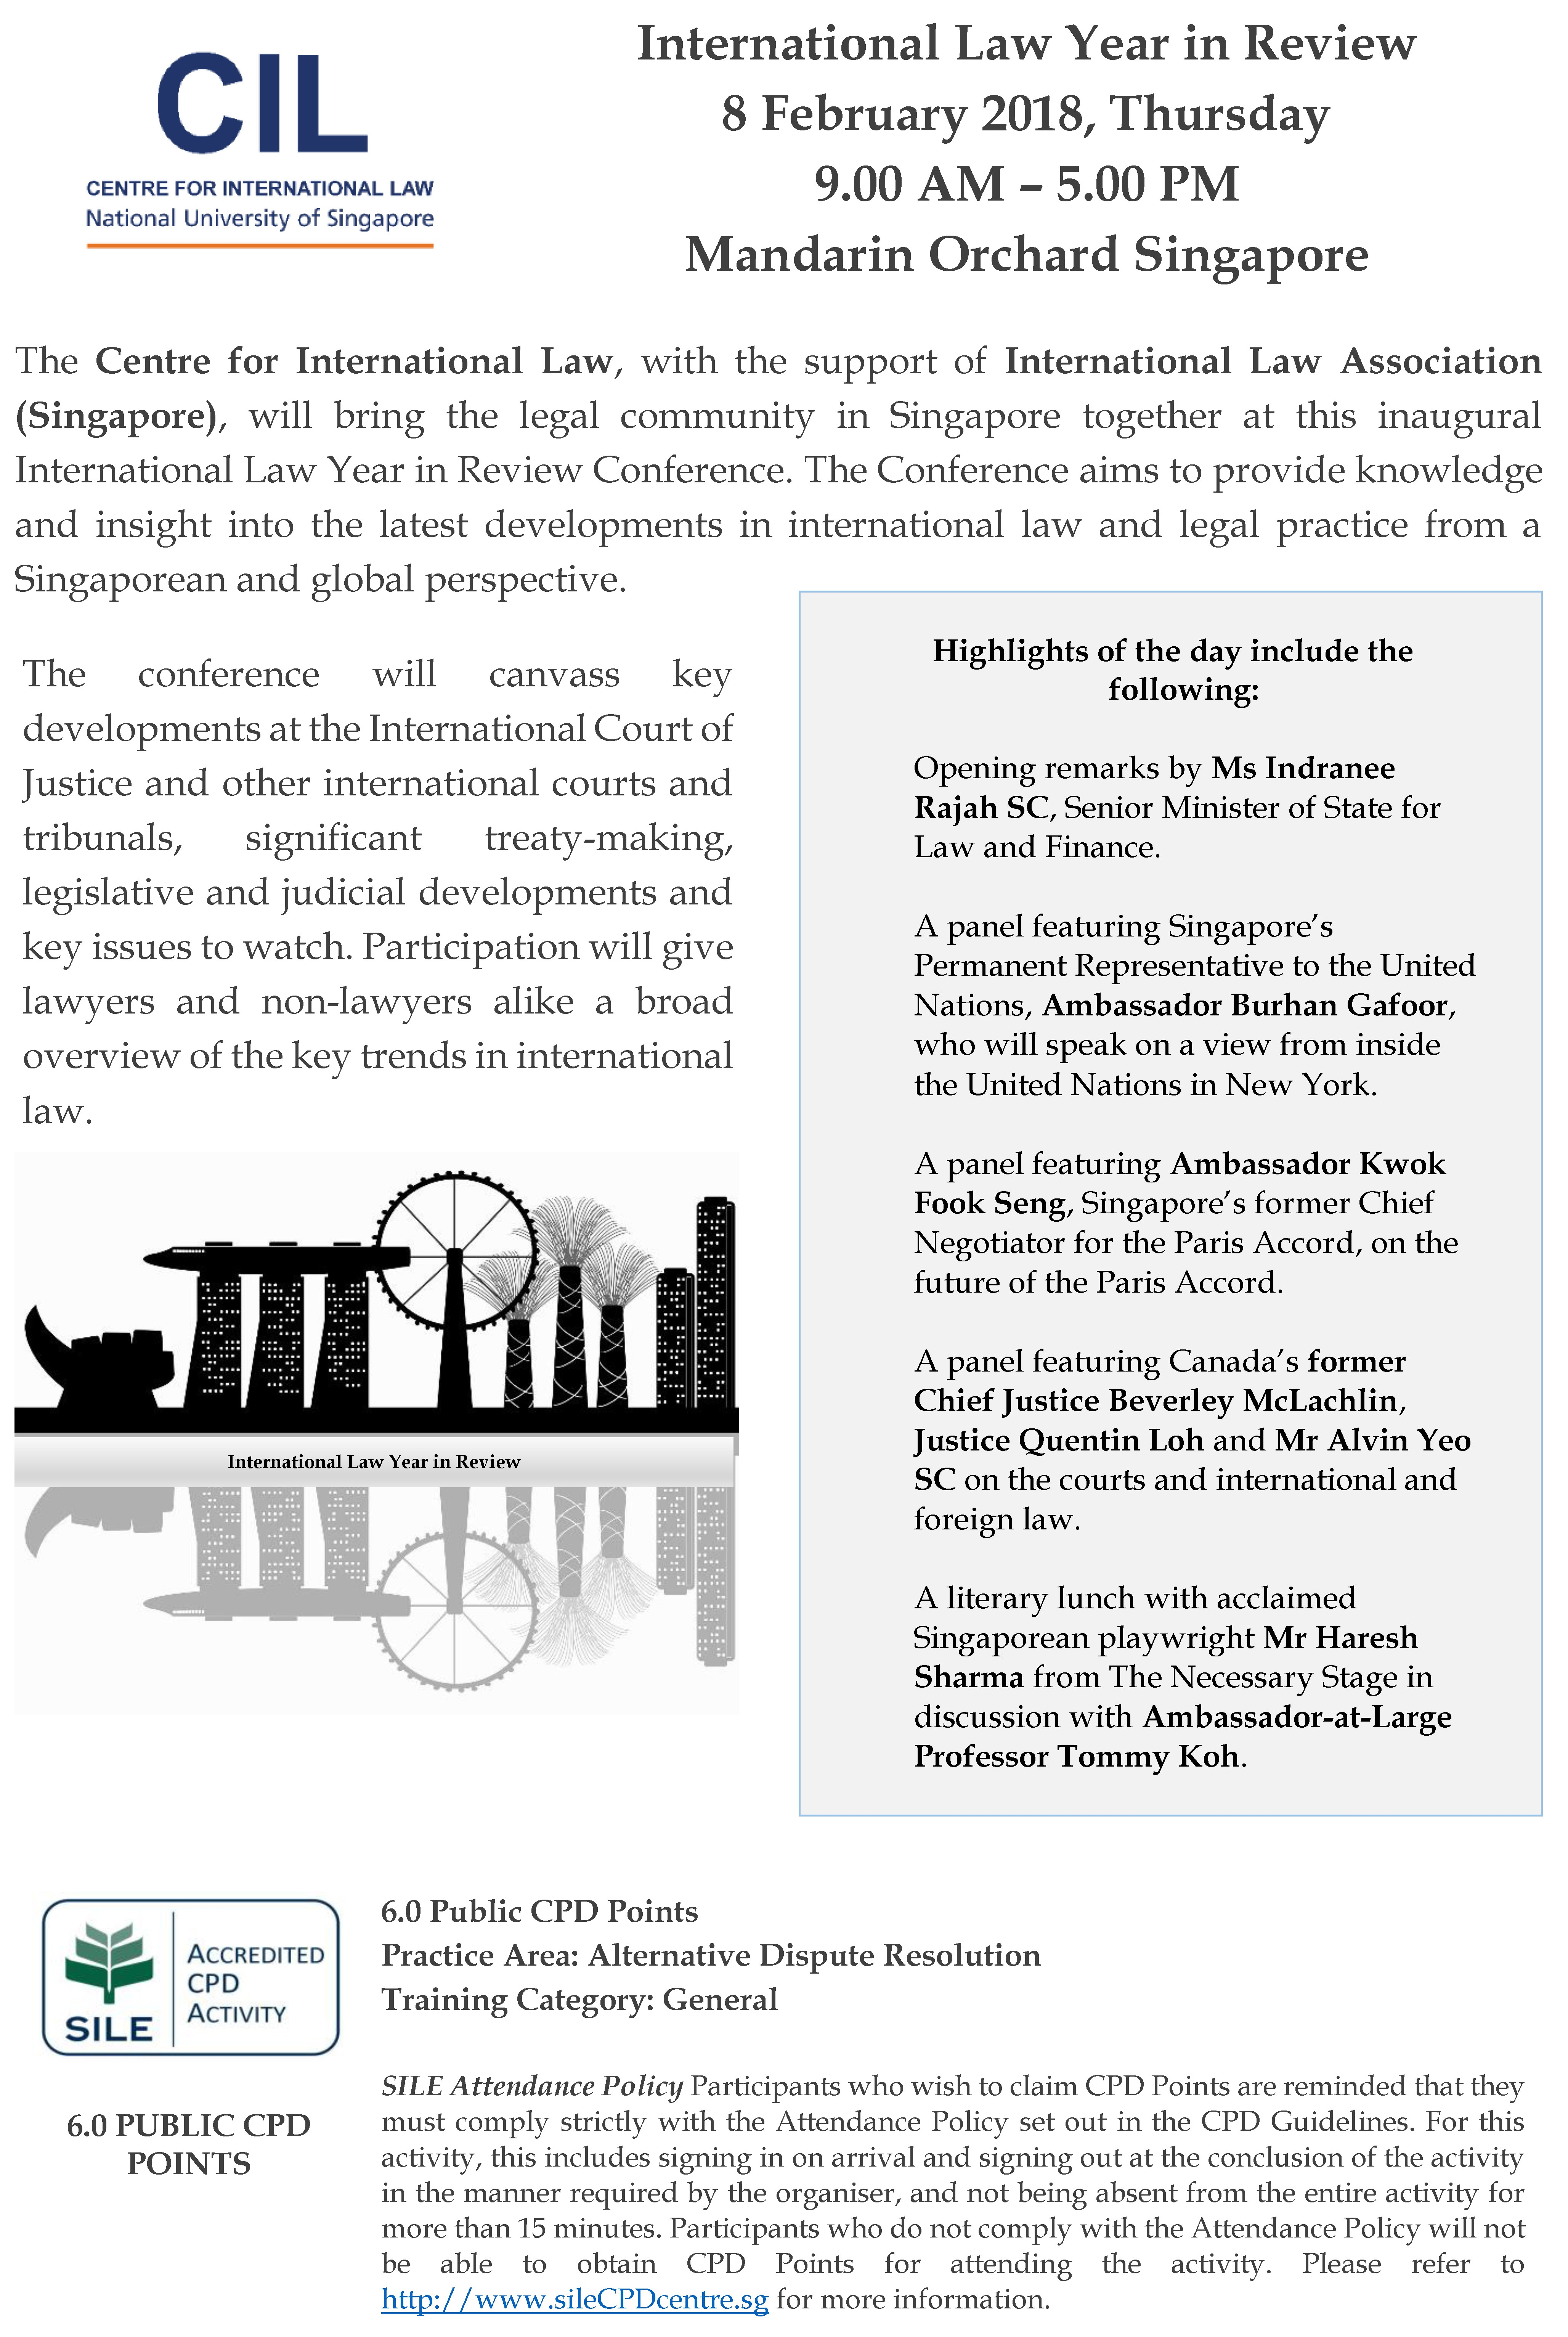 American University Address >> CIL International Law Year in Review Conference 2018 - Centre for International Law